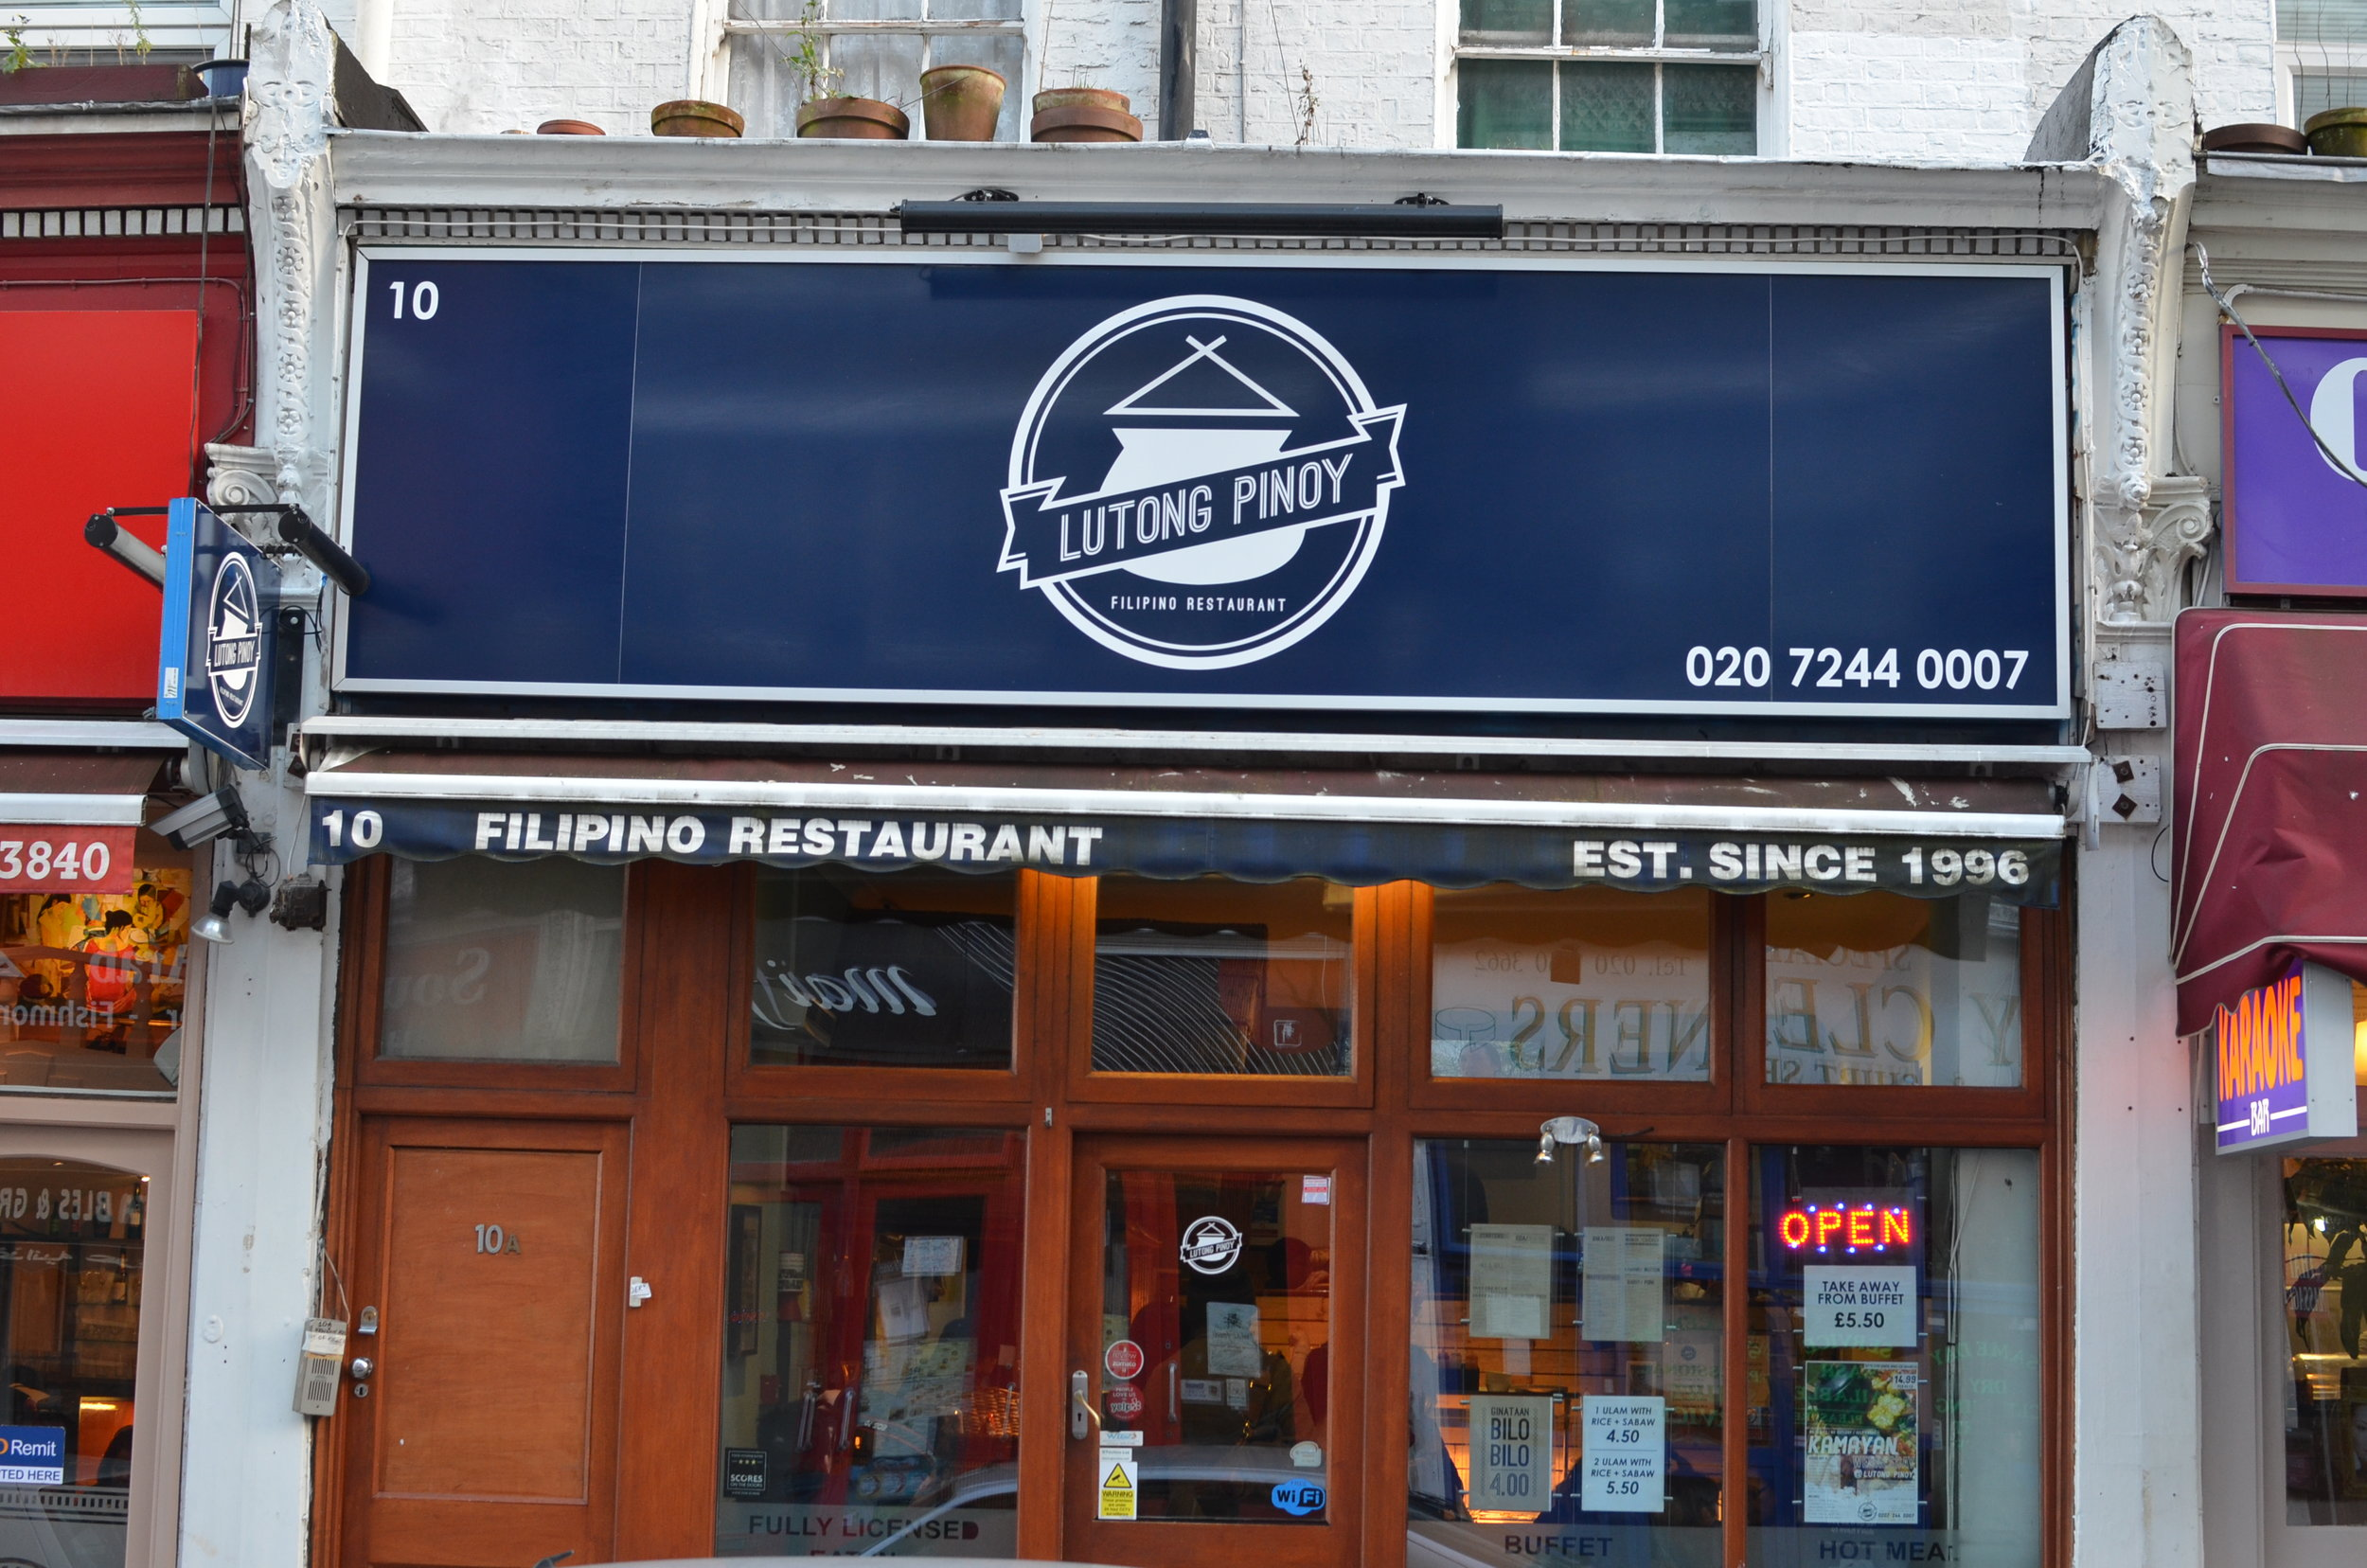 Lutong Pinoy Filipino Restaurant, Earl's Court, London - Credit to Travelin' 20-something